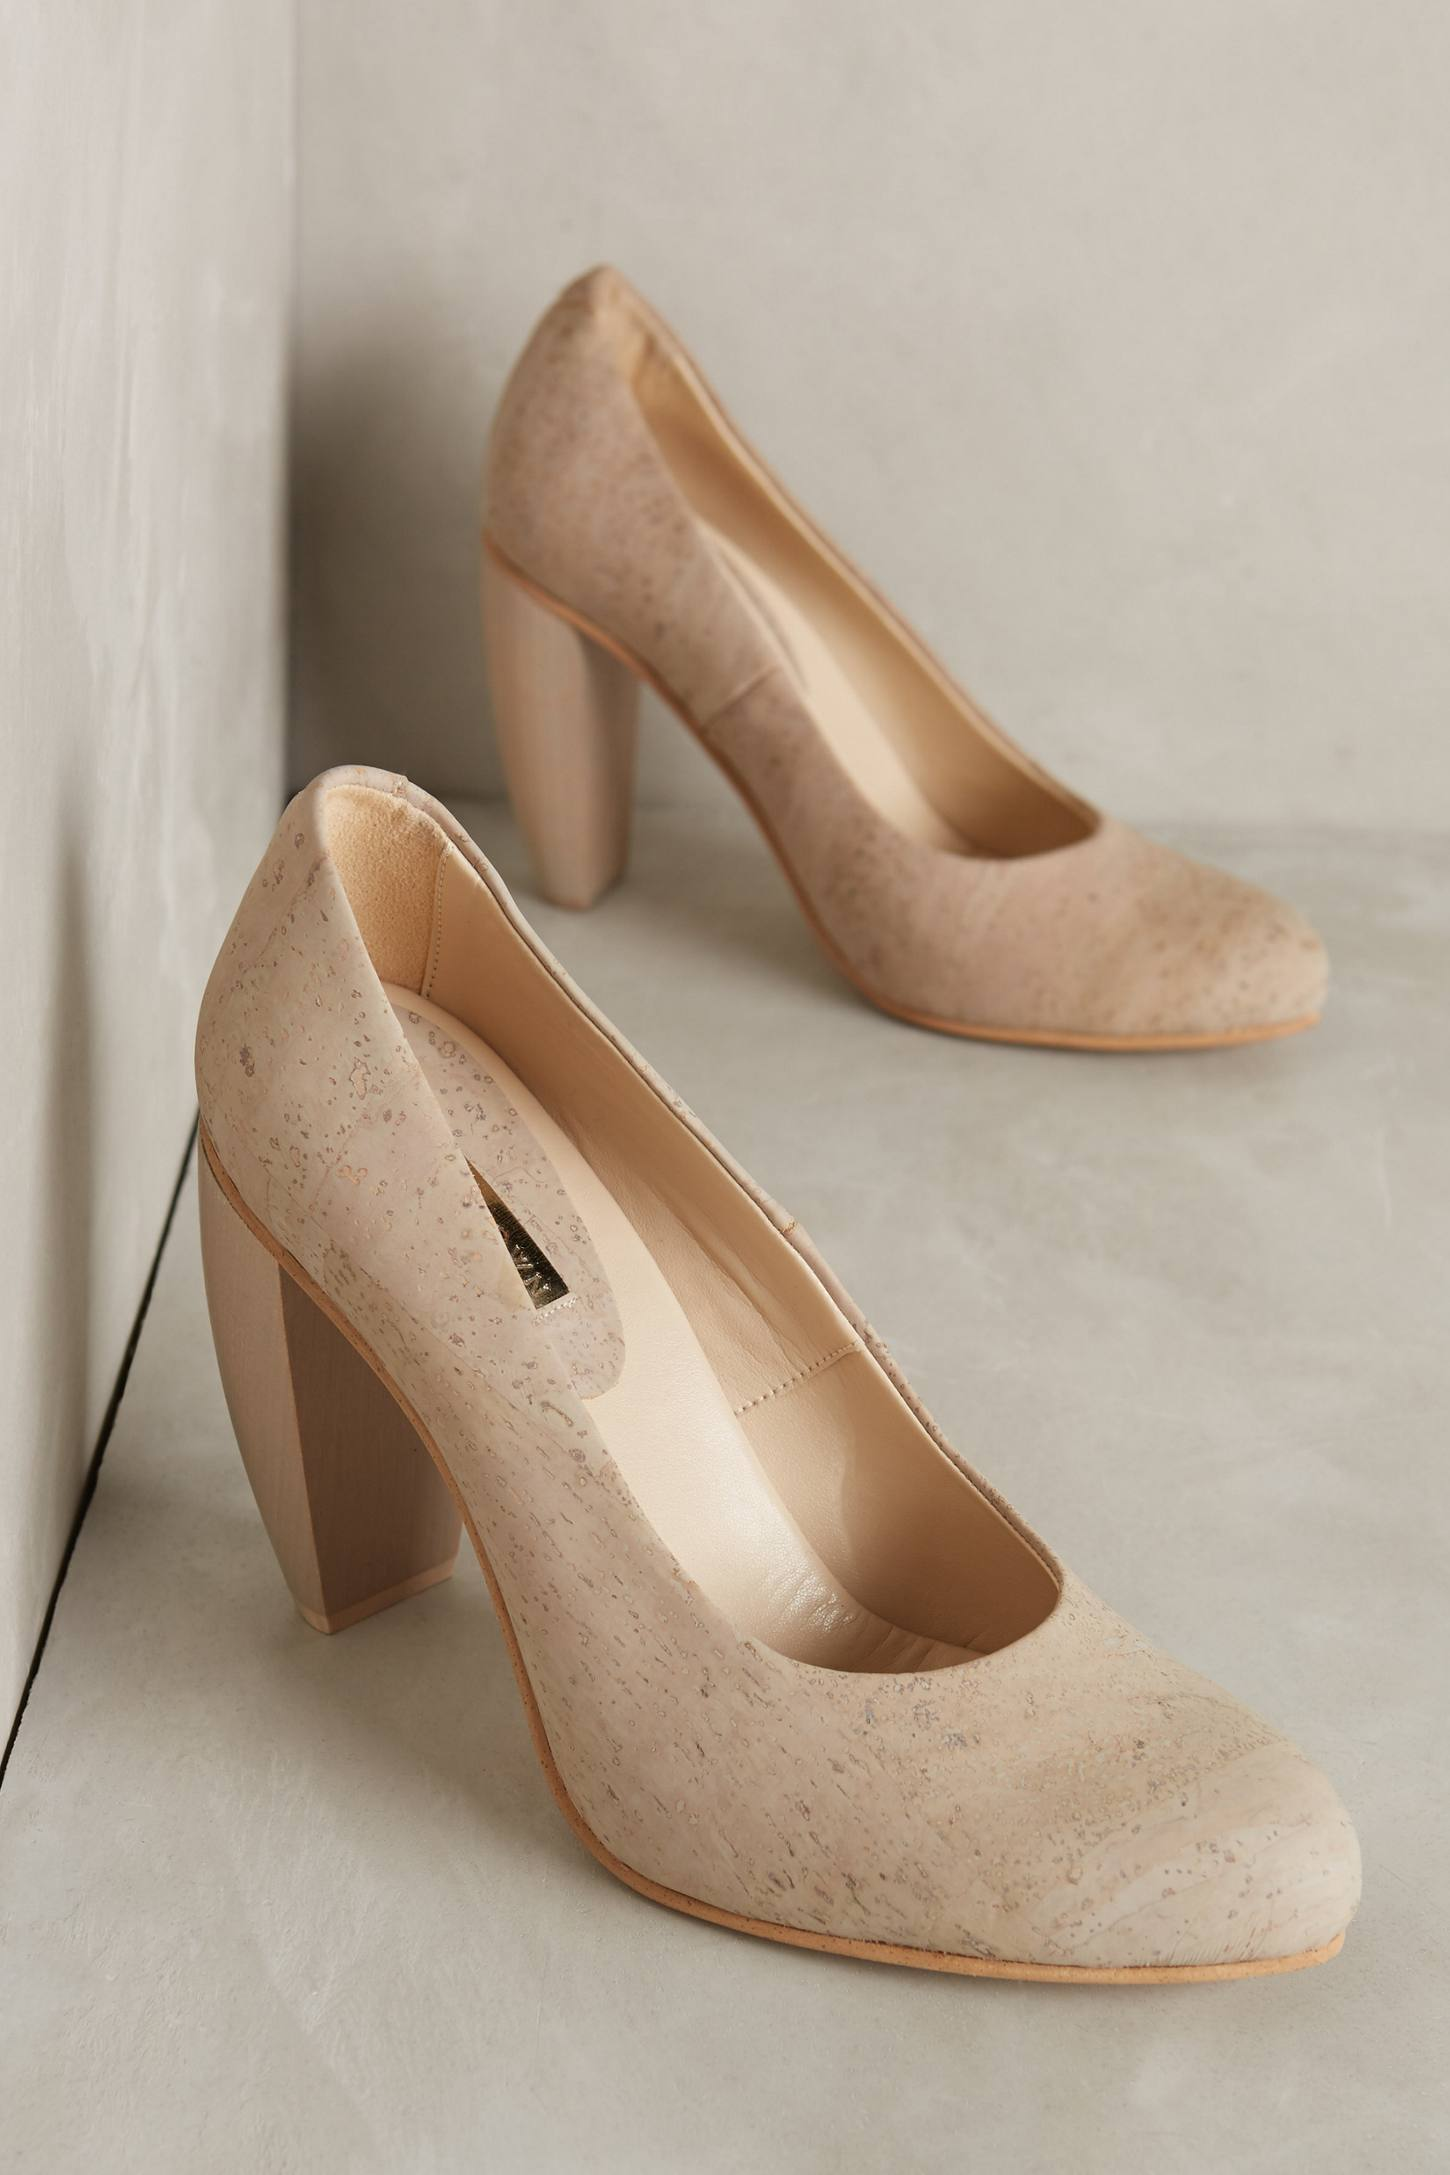 Sydney Brown Curved Heel Pumps